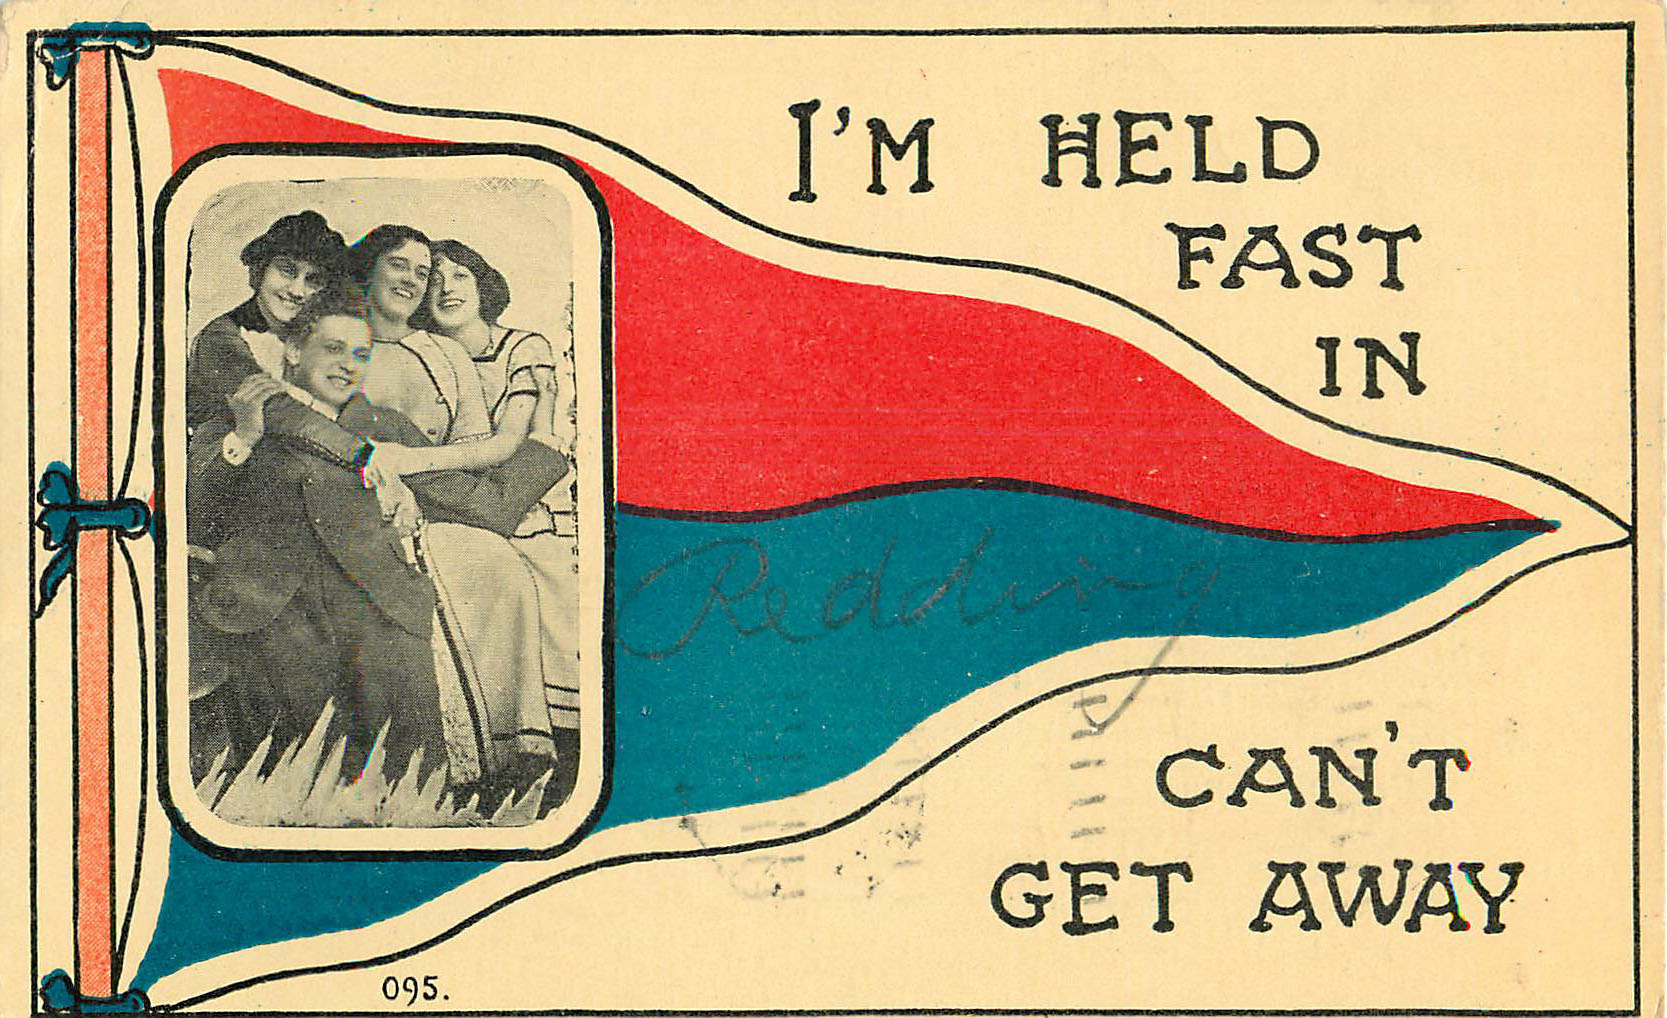 I'm Held Fast in Redding - Pennant Postcard